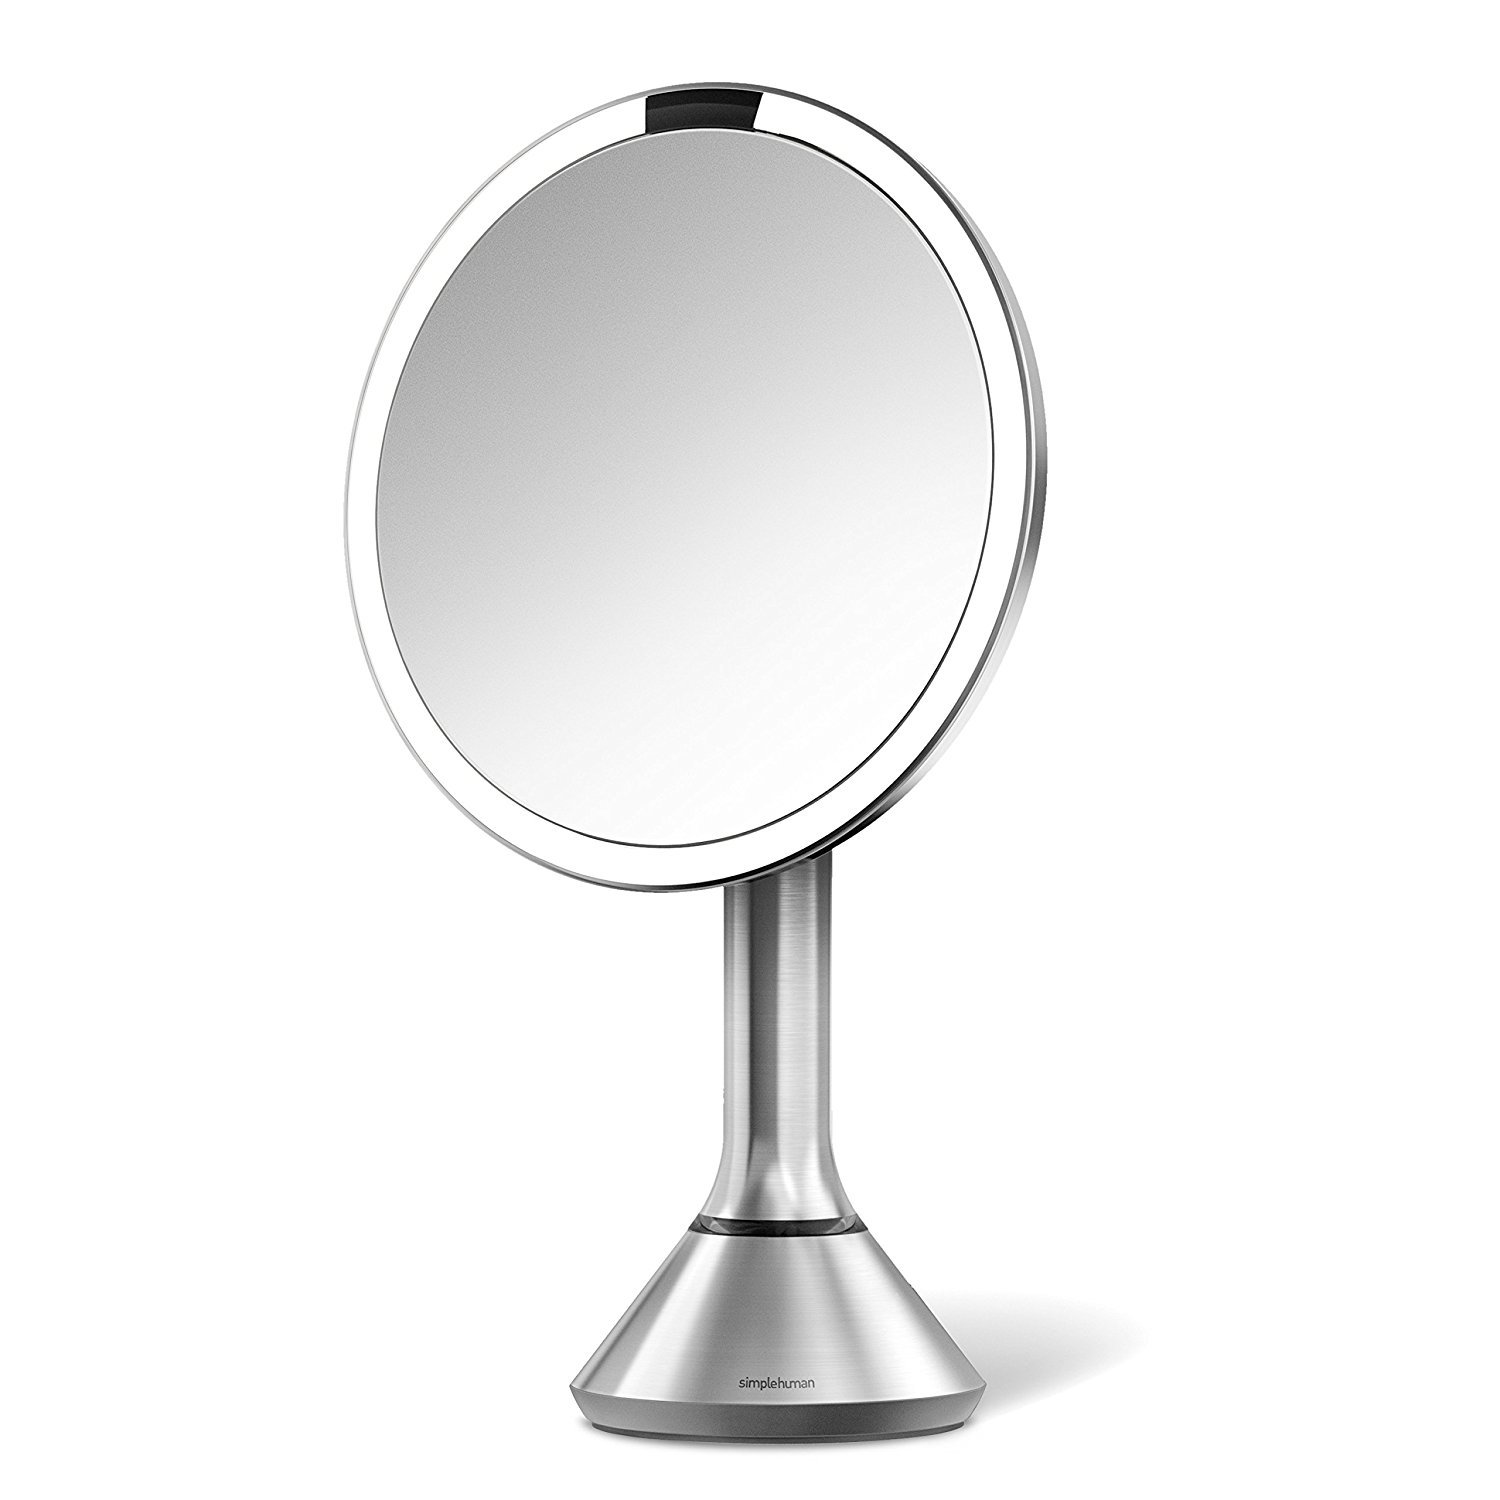 simplehuman Sensor Lighted Makeup Vanity Mirror 8'' Round, 5X Magnification, Stainless Steel, Rechargeable and Cordless